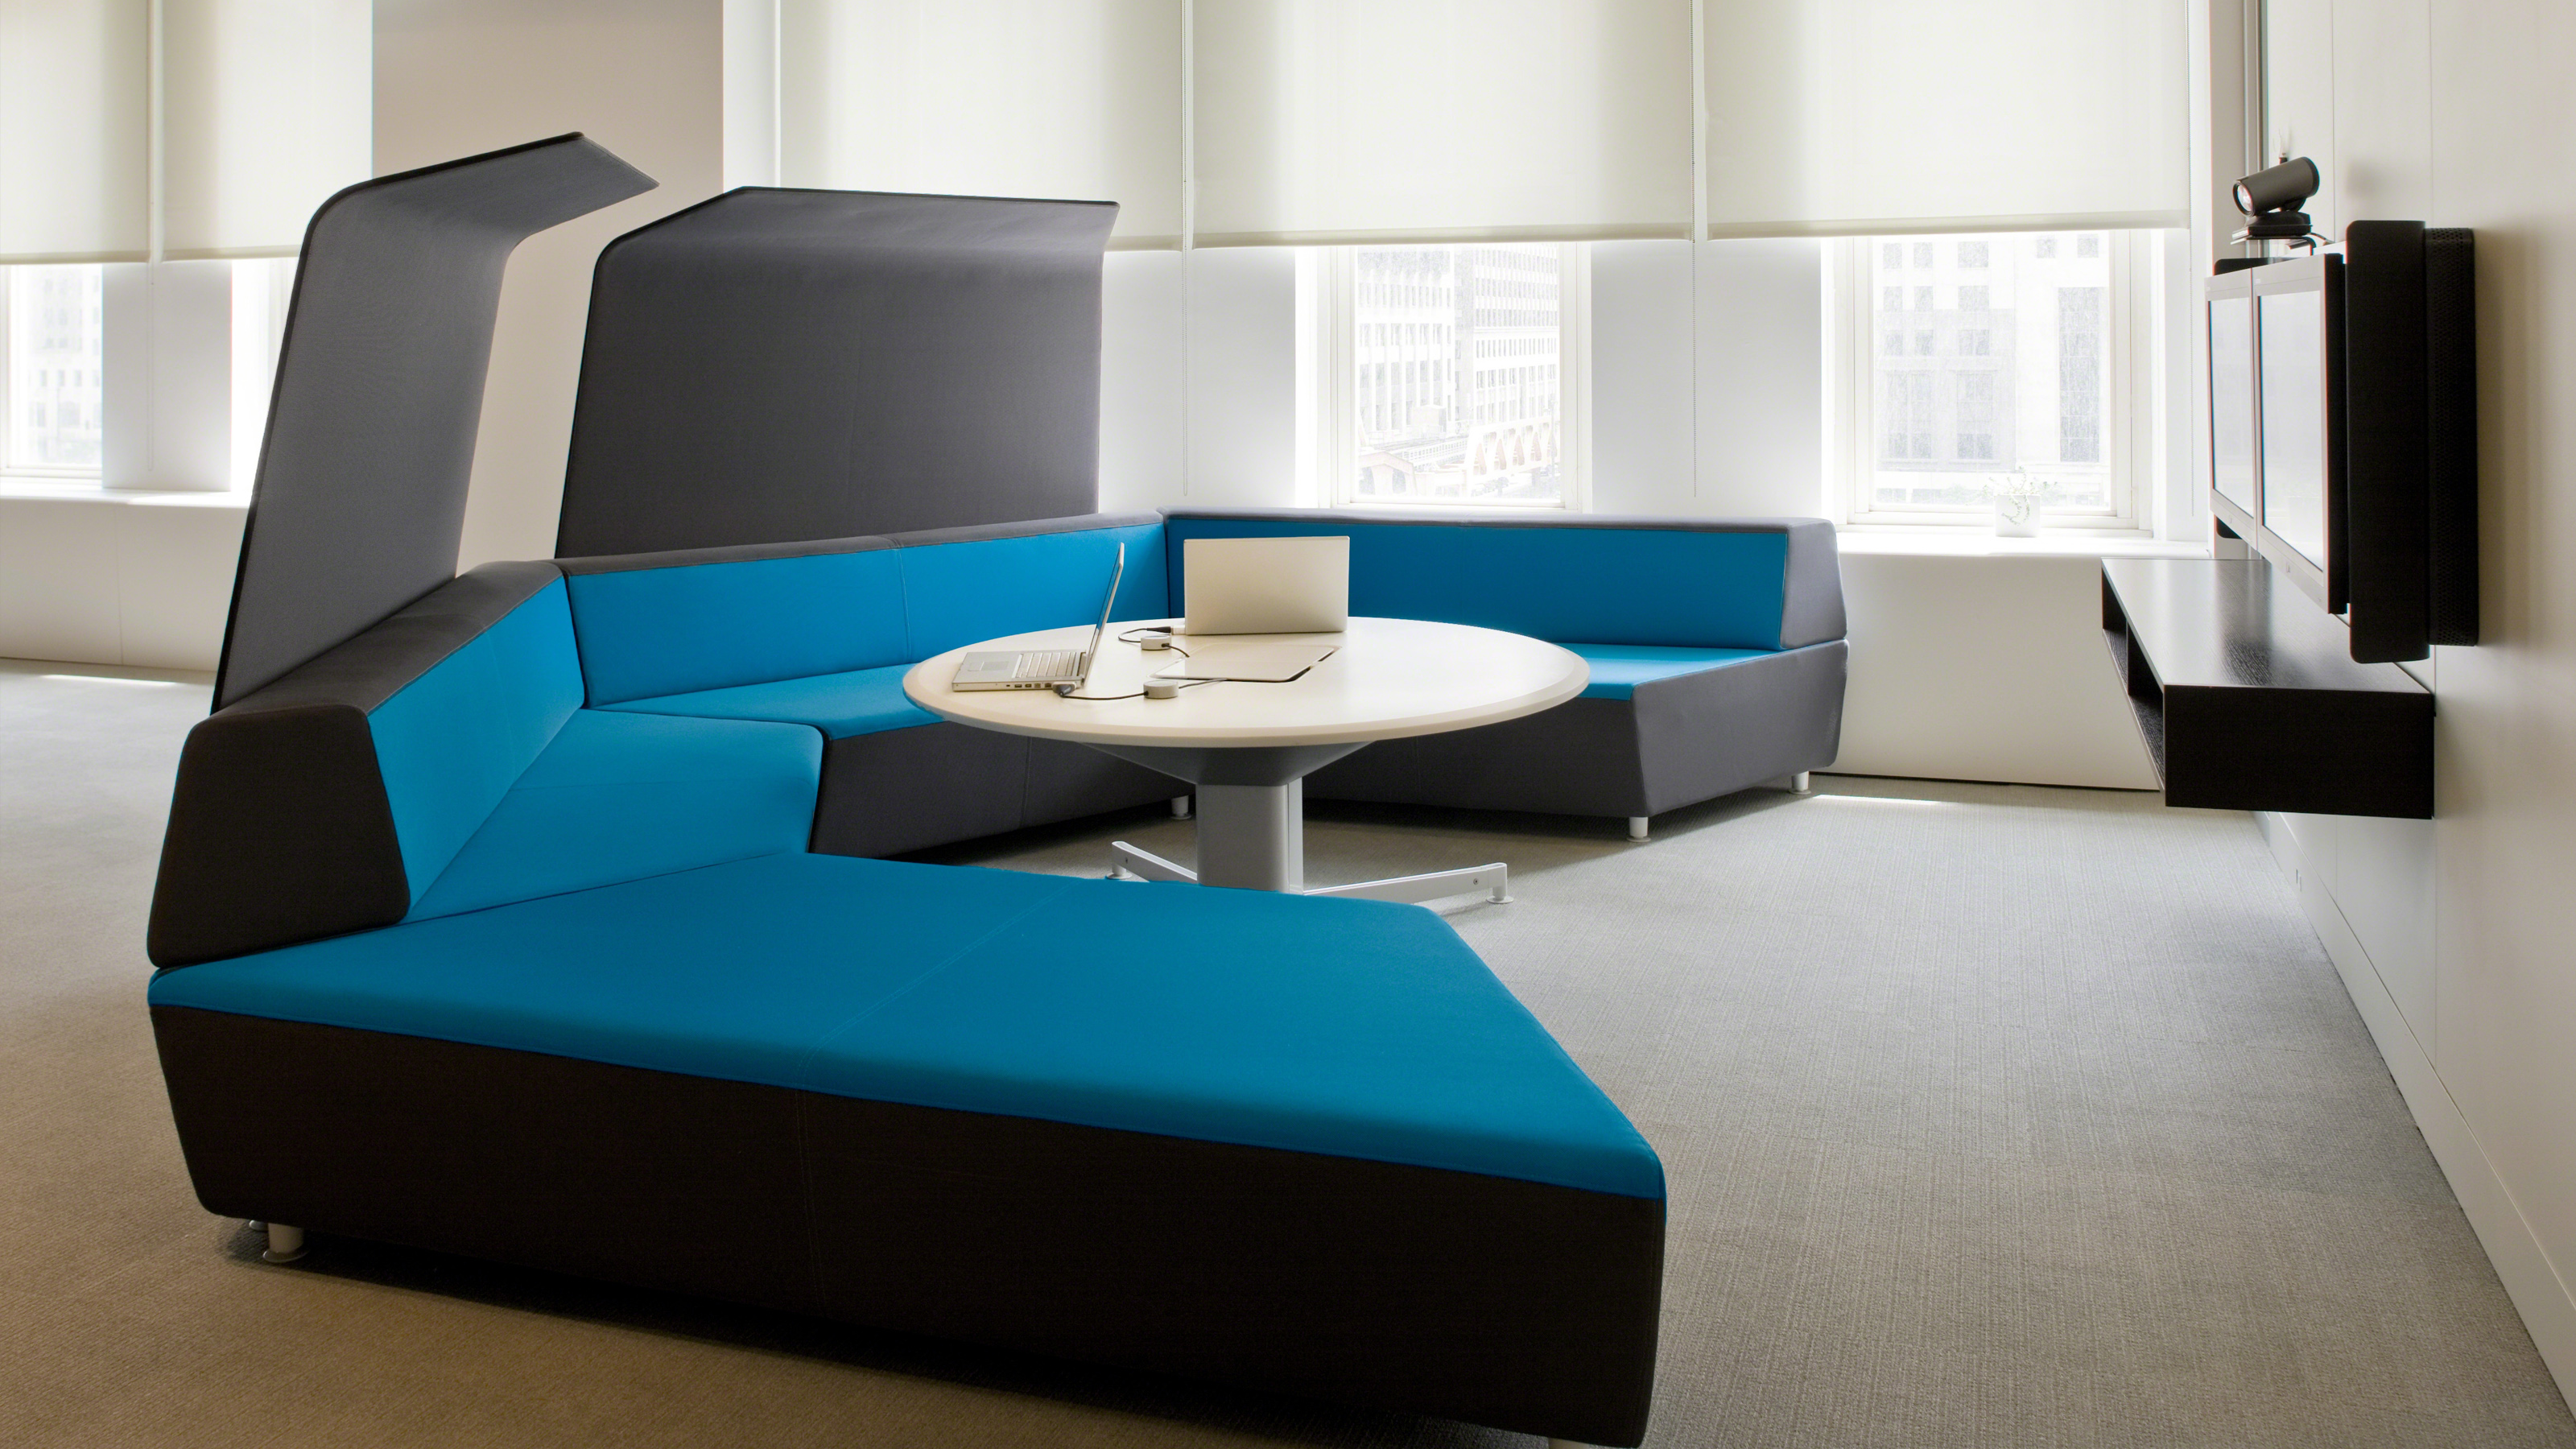 media scape Lounge Seating & fice Furnishings Steelcase